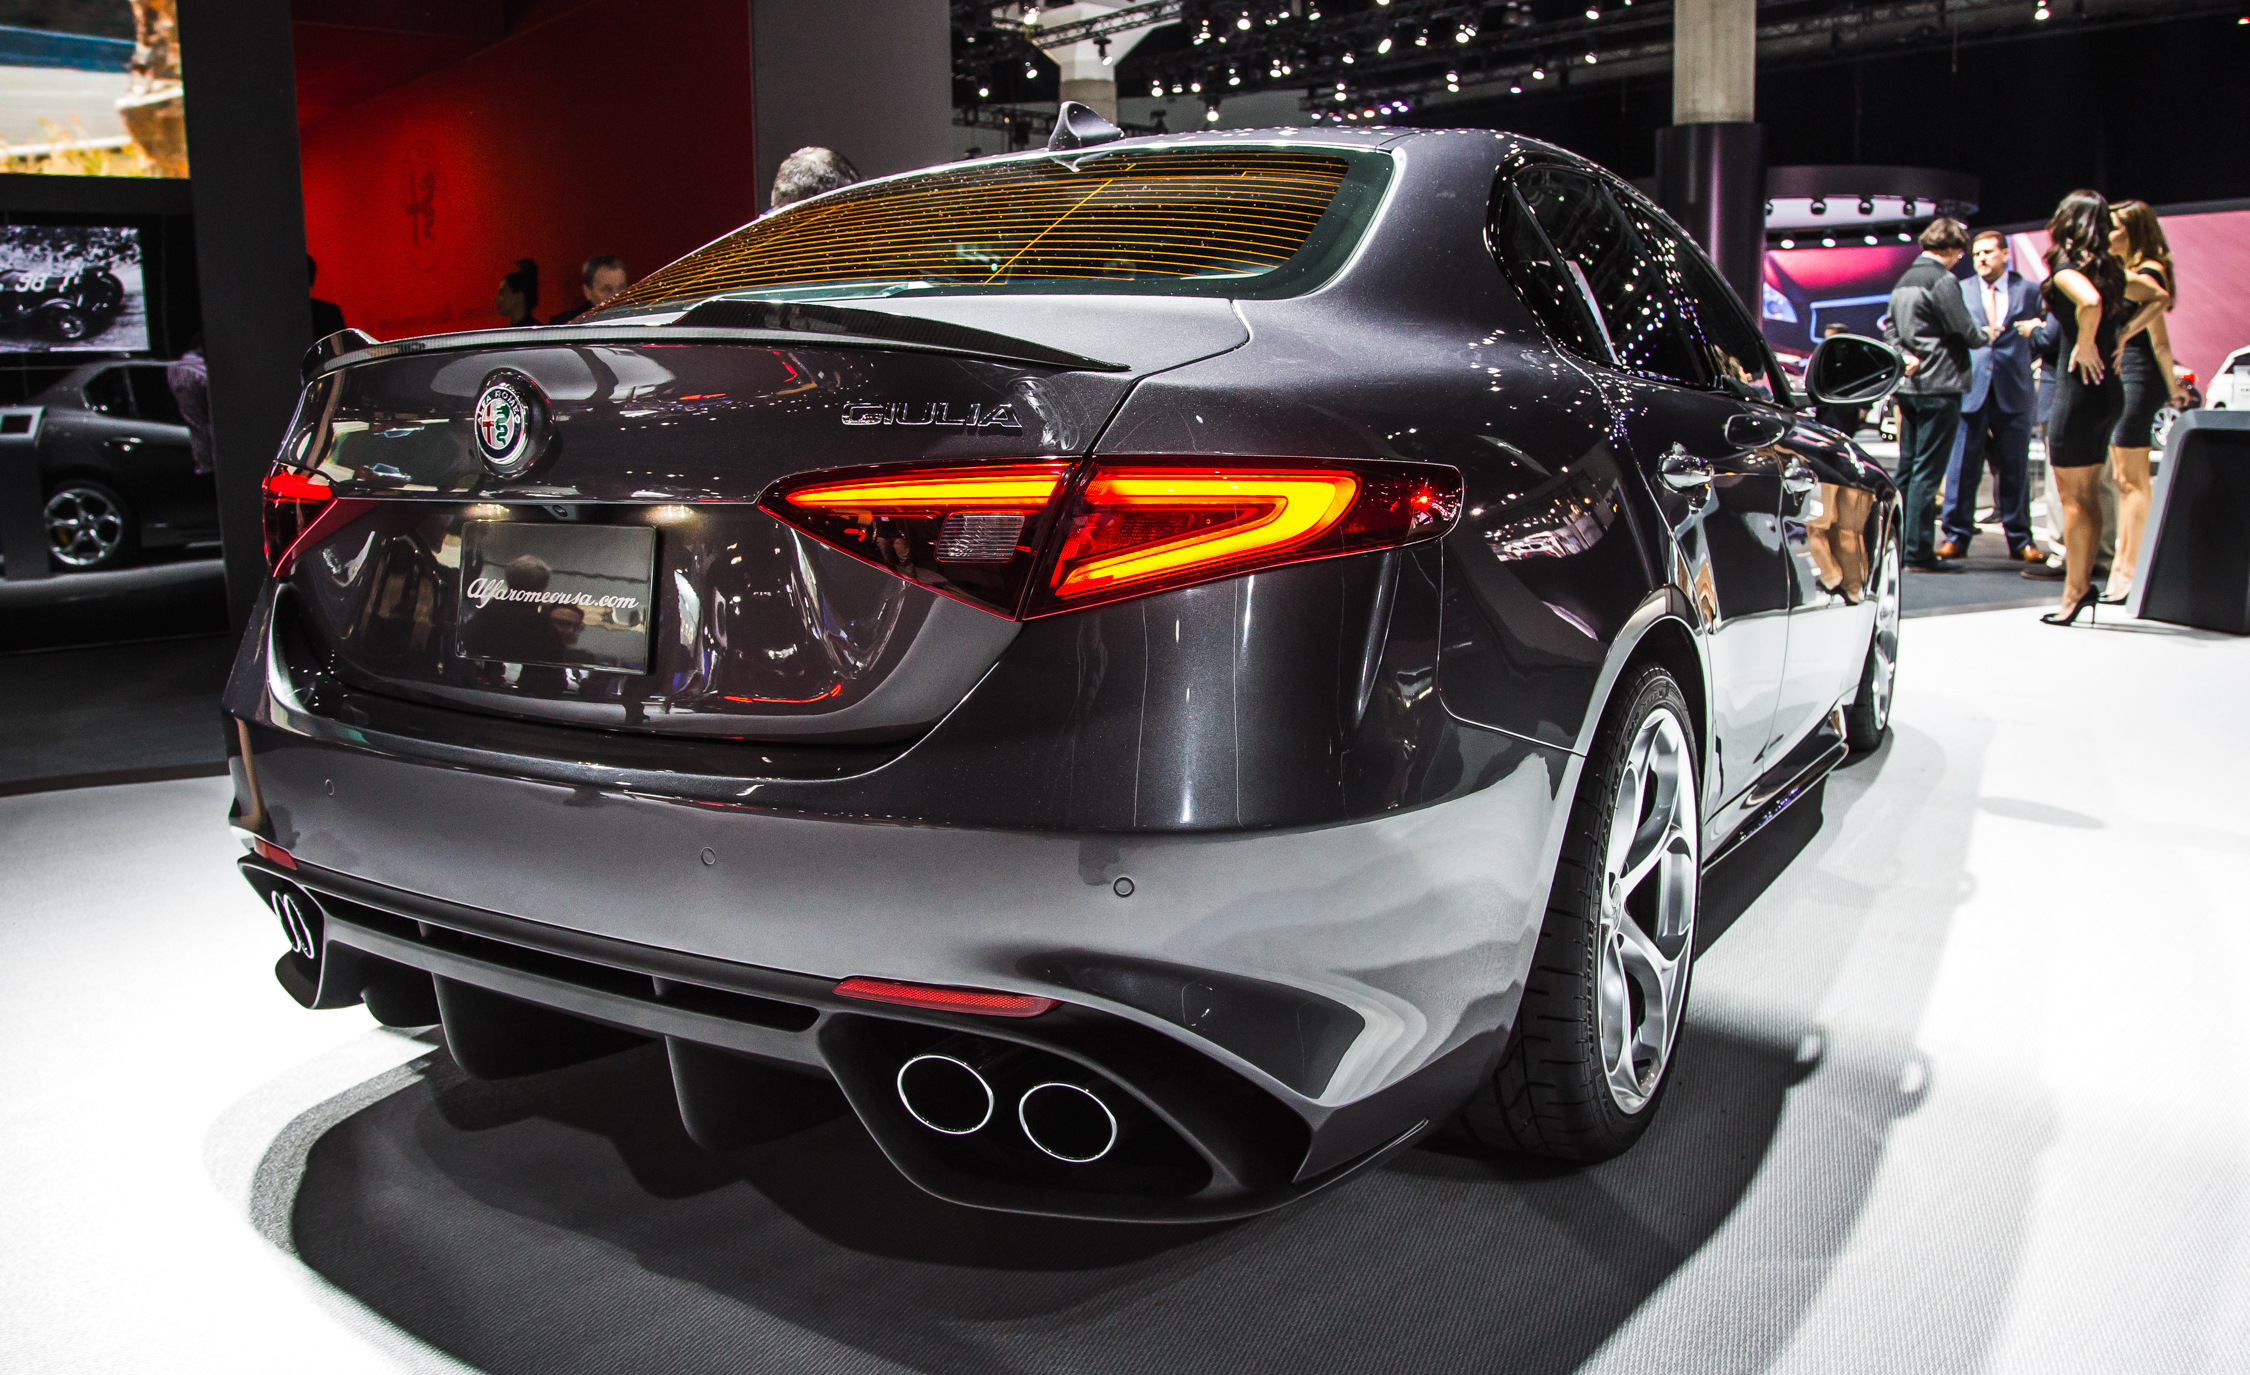 2017 Alfa Romeo Giulia Quadrifoglio Rear Exterior (Photo 25 of 29)